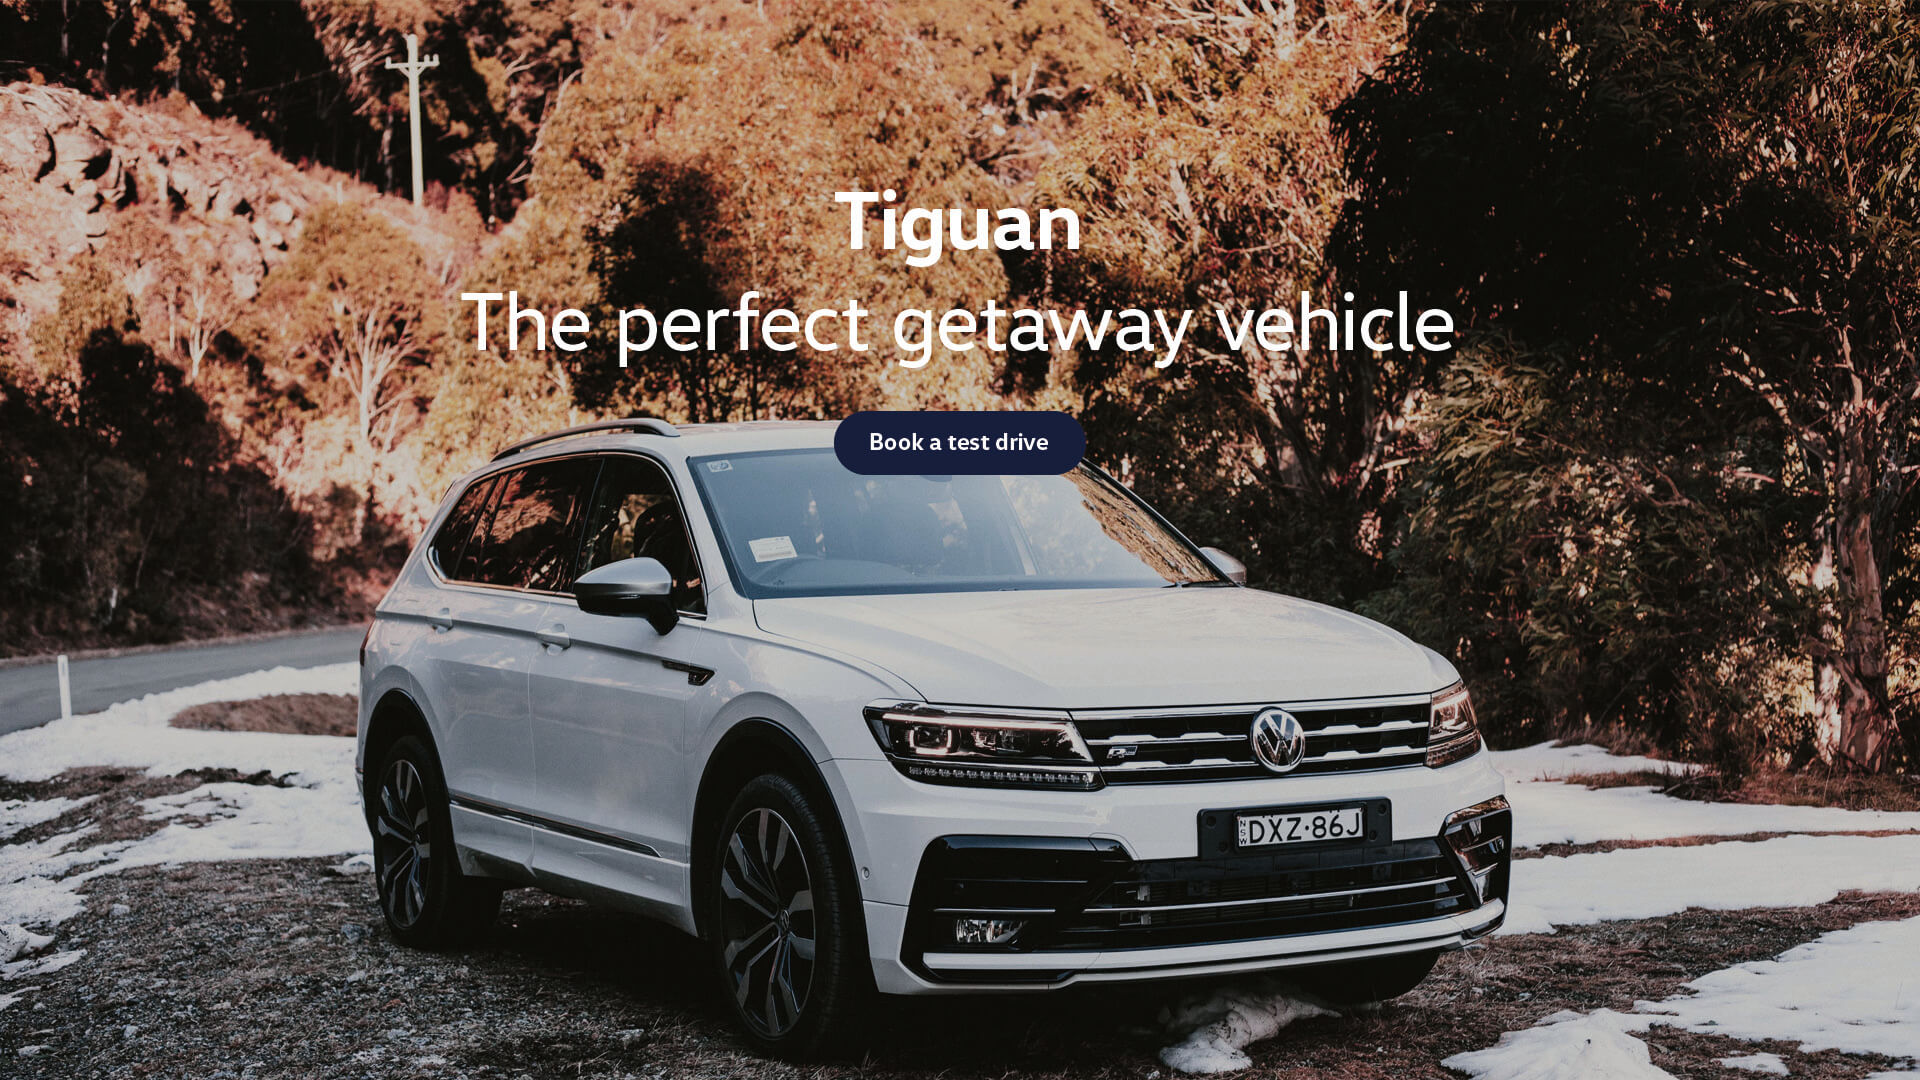 Volkswagen Tiguan. The perfect getaway vehicle. Test drive today at Westpoint Volkswagen, Brisbane